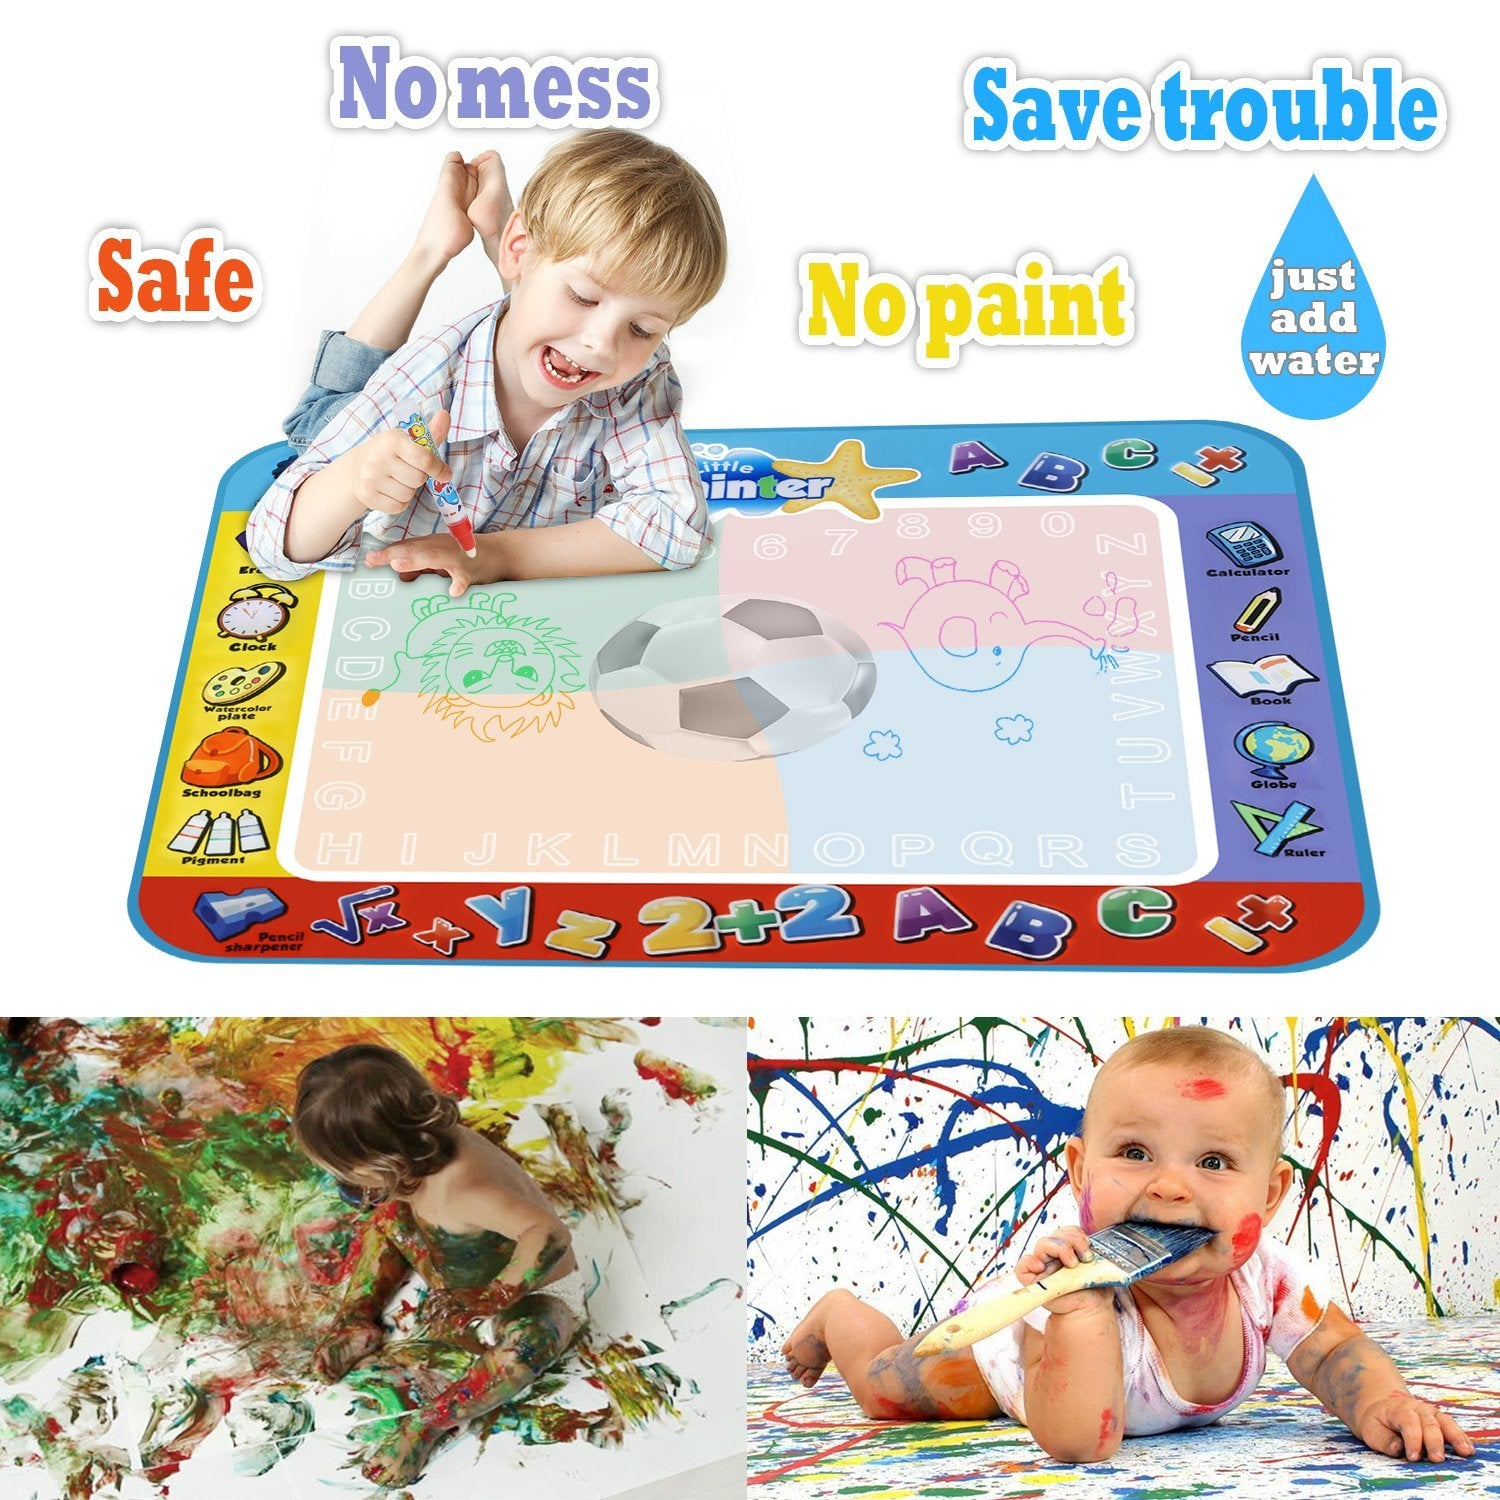 Alago Water Doodle Mat Kids Toys Large Aqua Mat Toddlers Painting Coloring Pad With 4 Colors Gifts For Girls Boys Age 2 3 4 5 Years Old 4